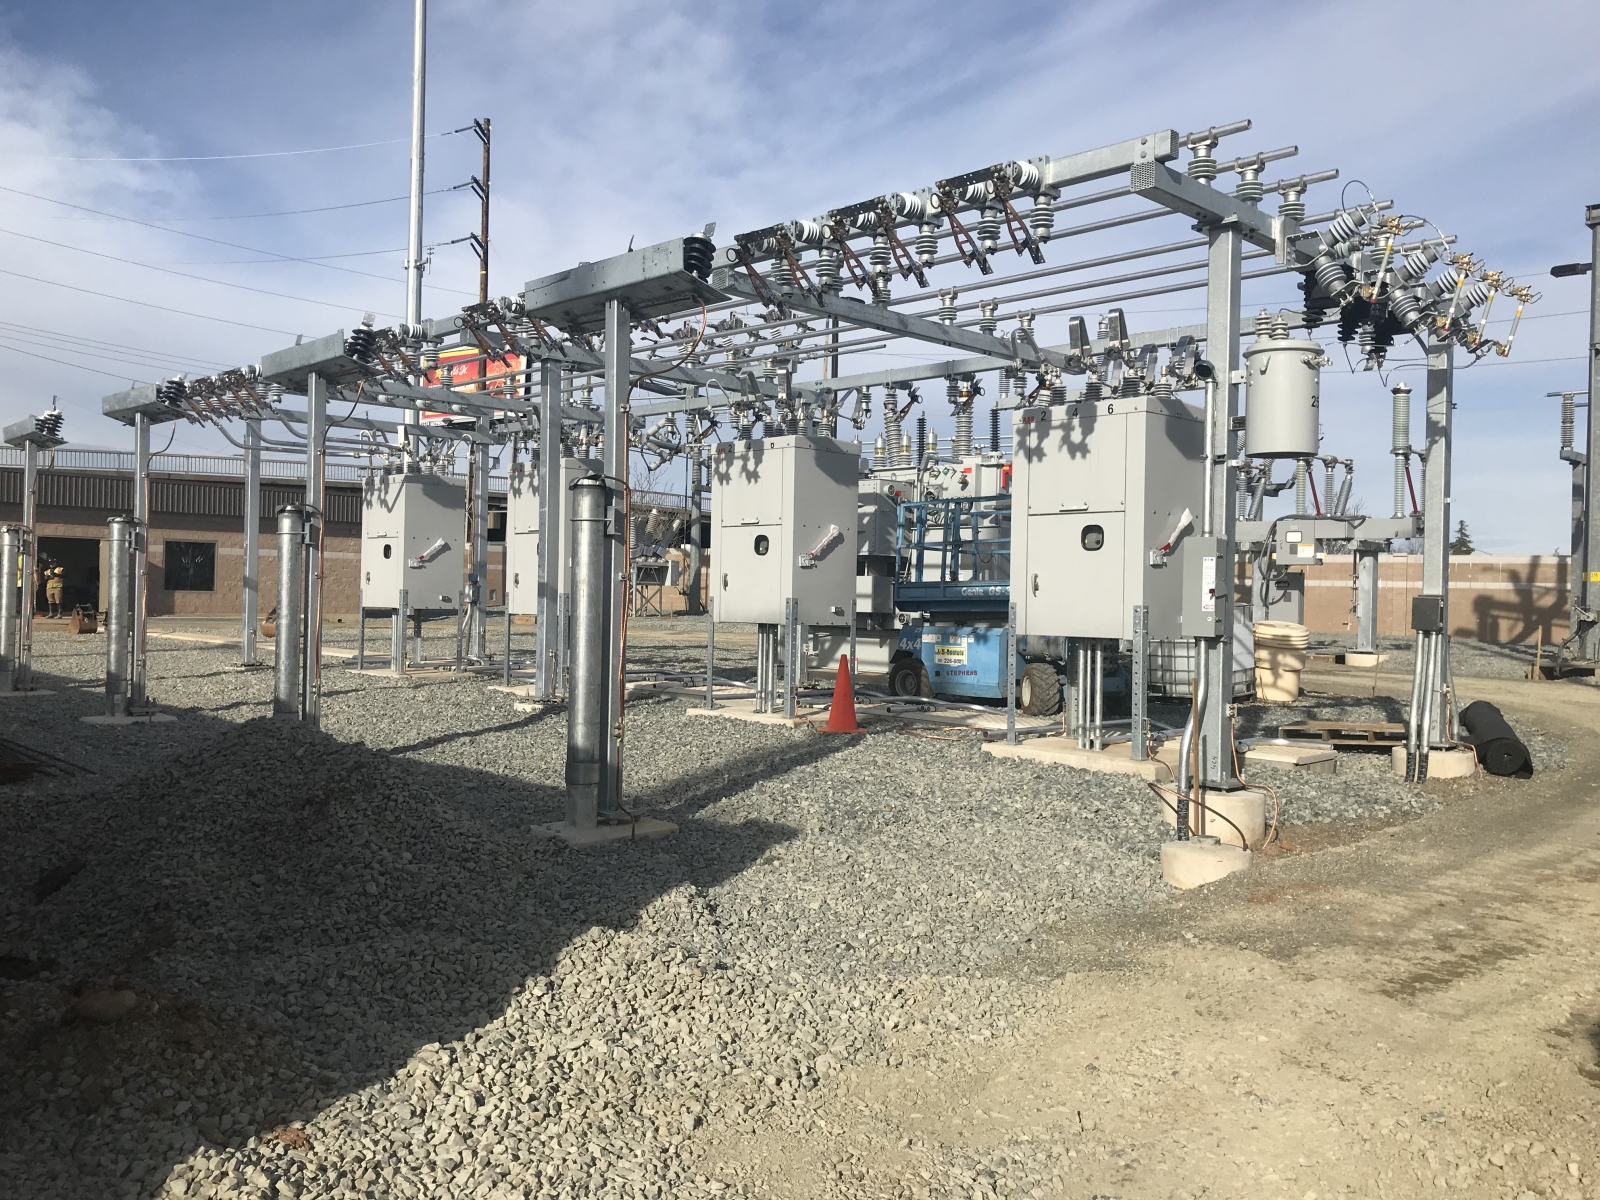 reu-oregon-street-substation-04